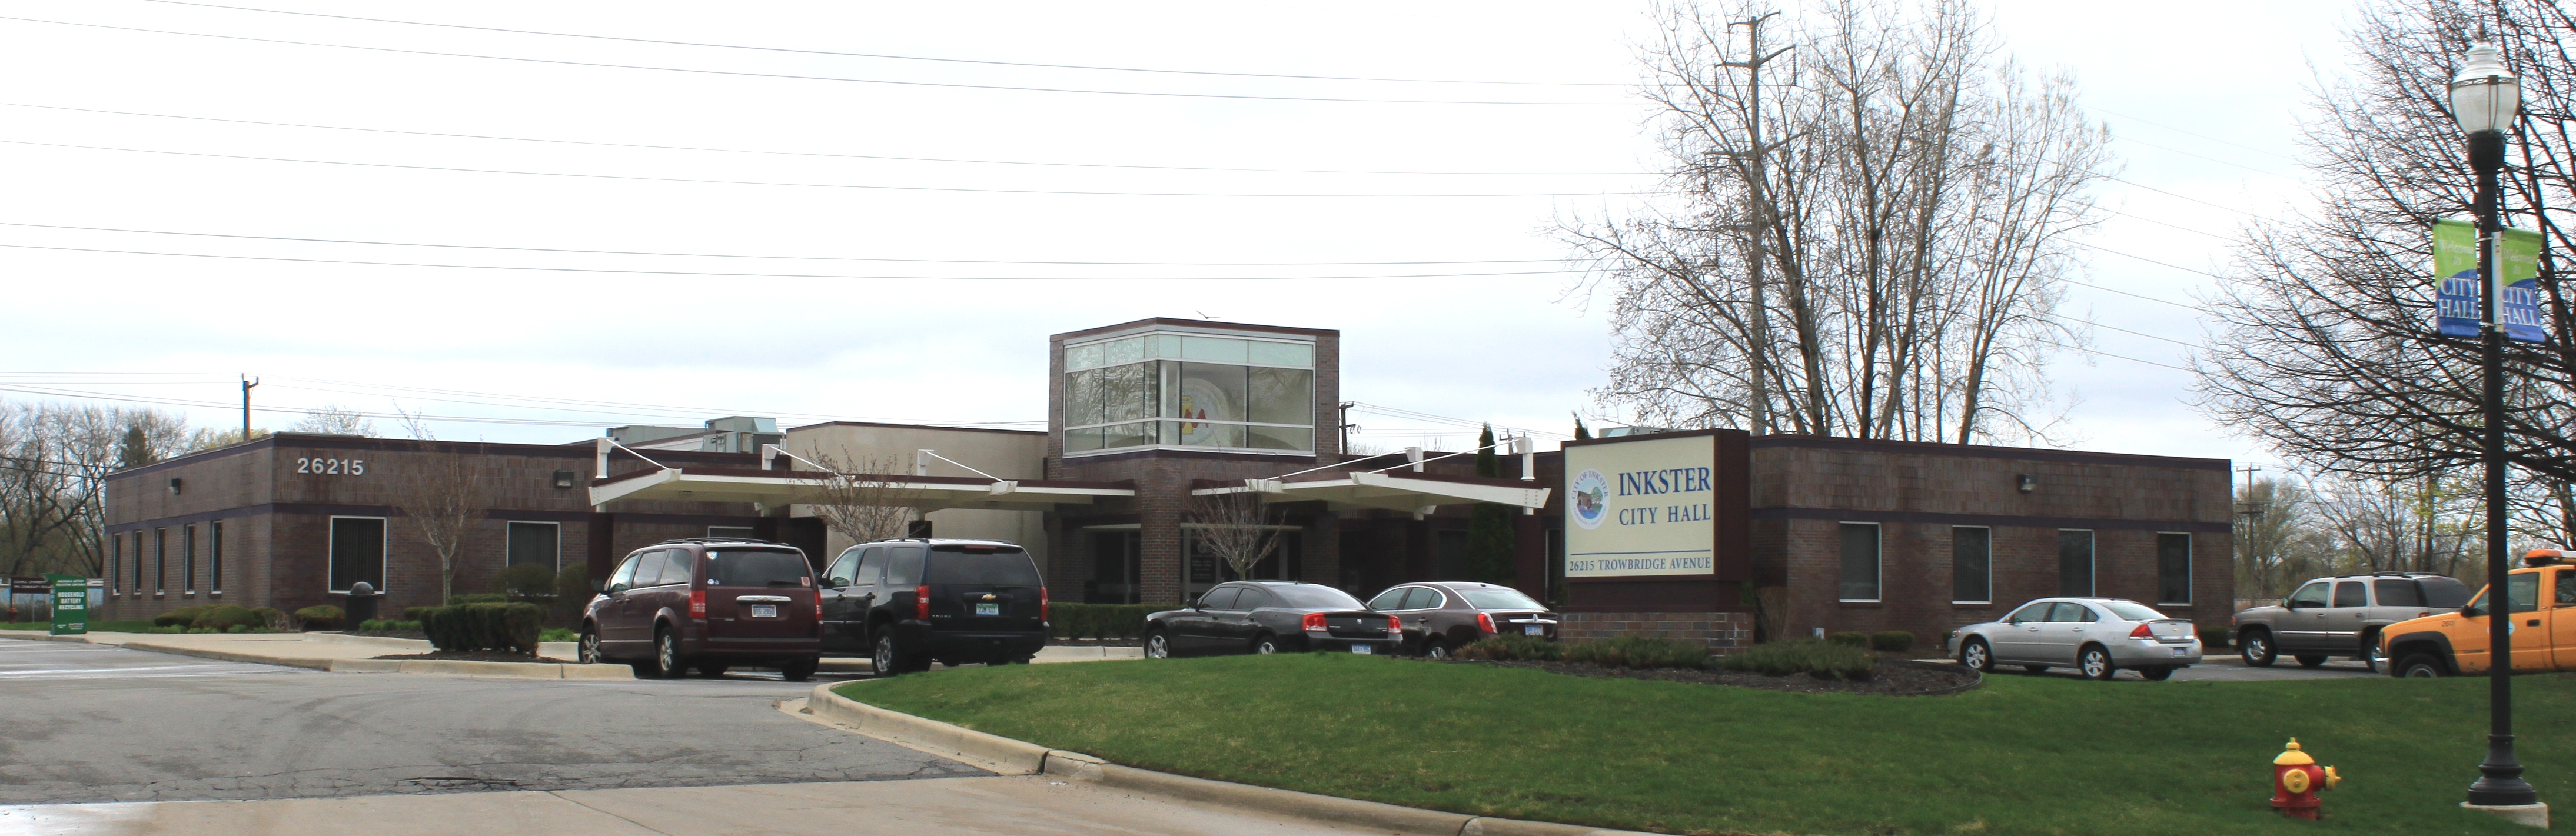 File:Inkster Michigan City Hall.JPG - Wikipedia, the free encyclopediainkster city